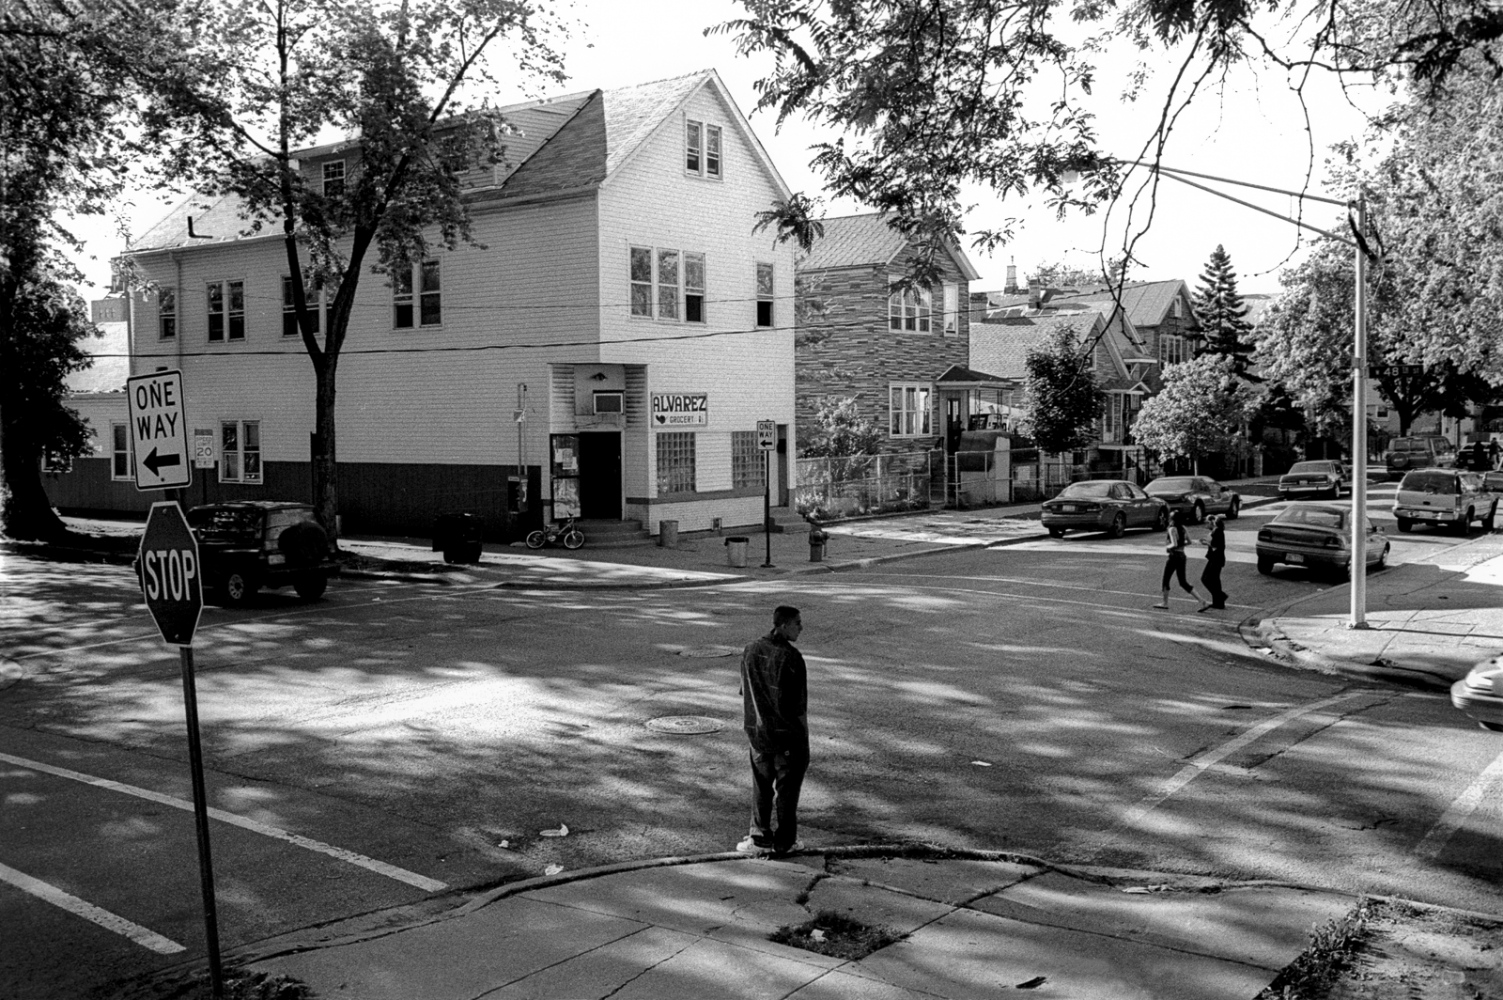 Michael waits for a friend at the corner of 48th and Loomis in the Back of the Yards nighborhood of Chicago. Originally the Back of the Yards neighborhood consisted of immigrants from Eastern Europe and over time became predominately latino.